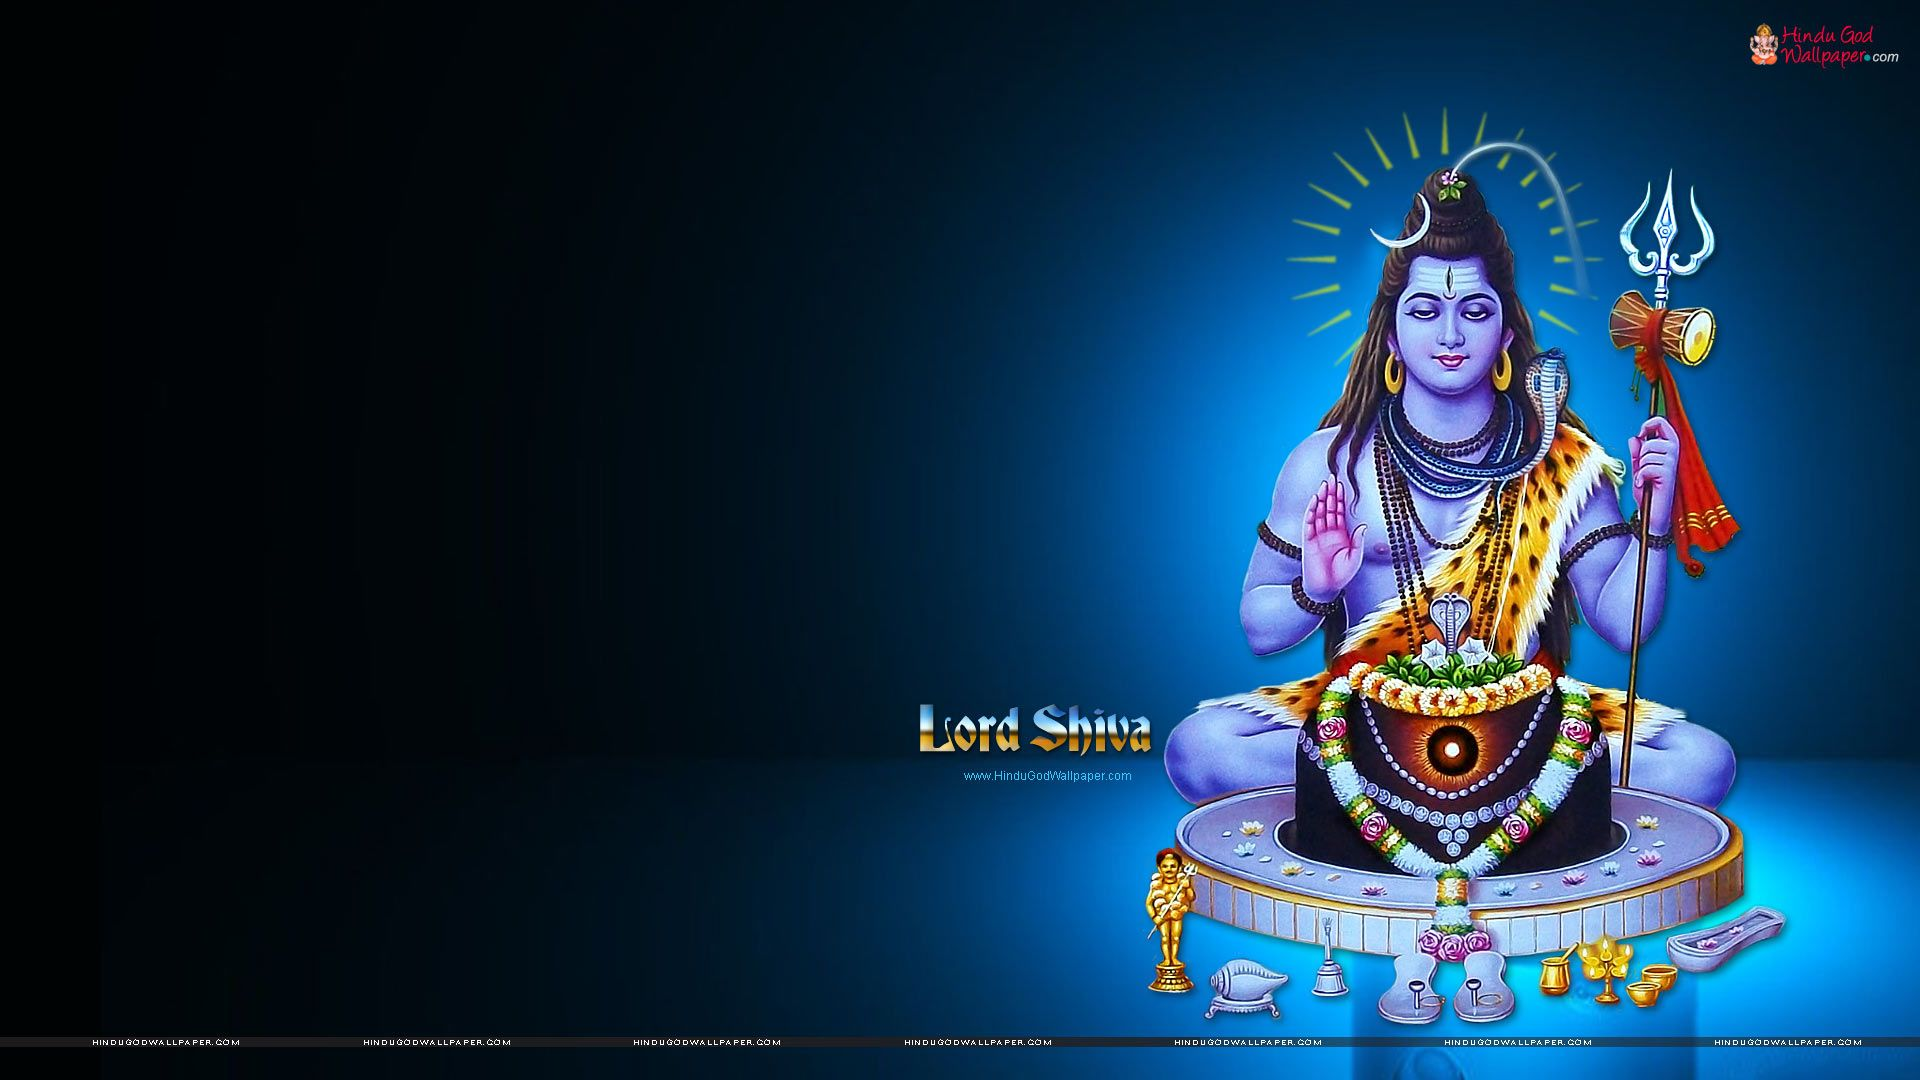 Lord Shiva Hd Wallpapers 1080p Download Golden Gods In 2019